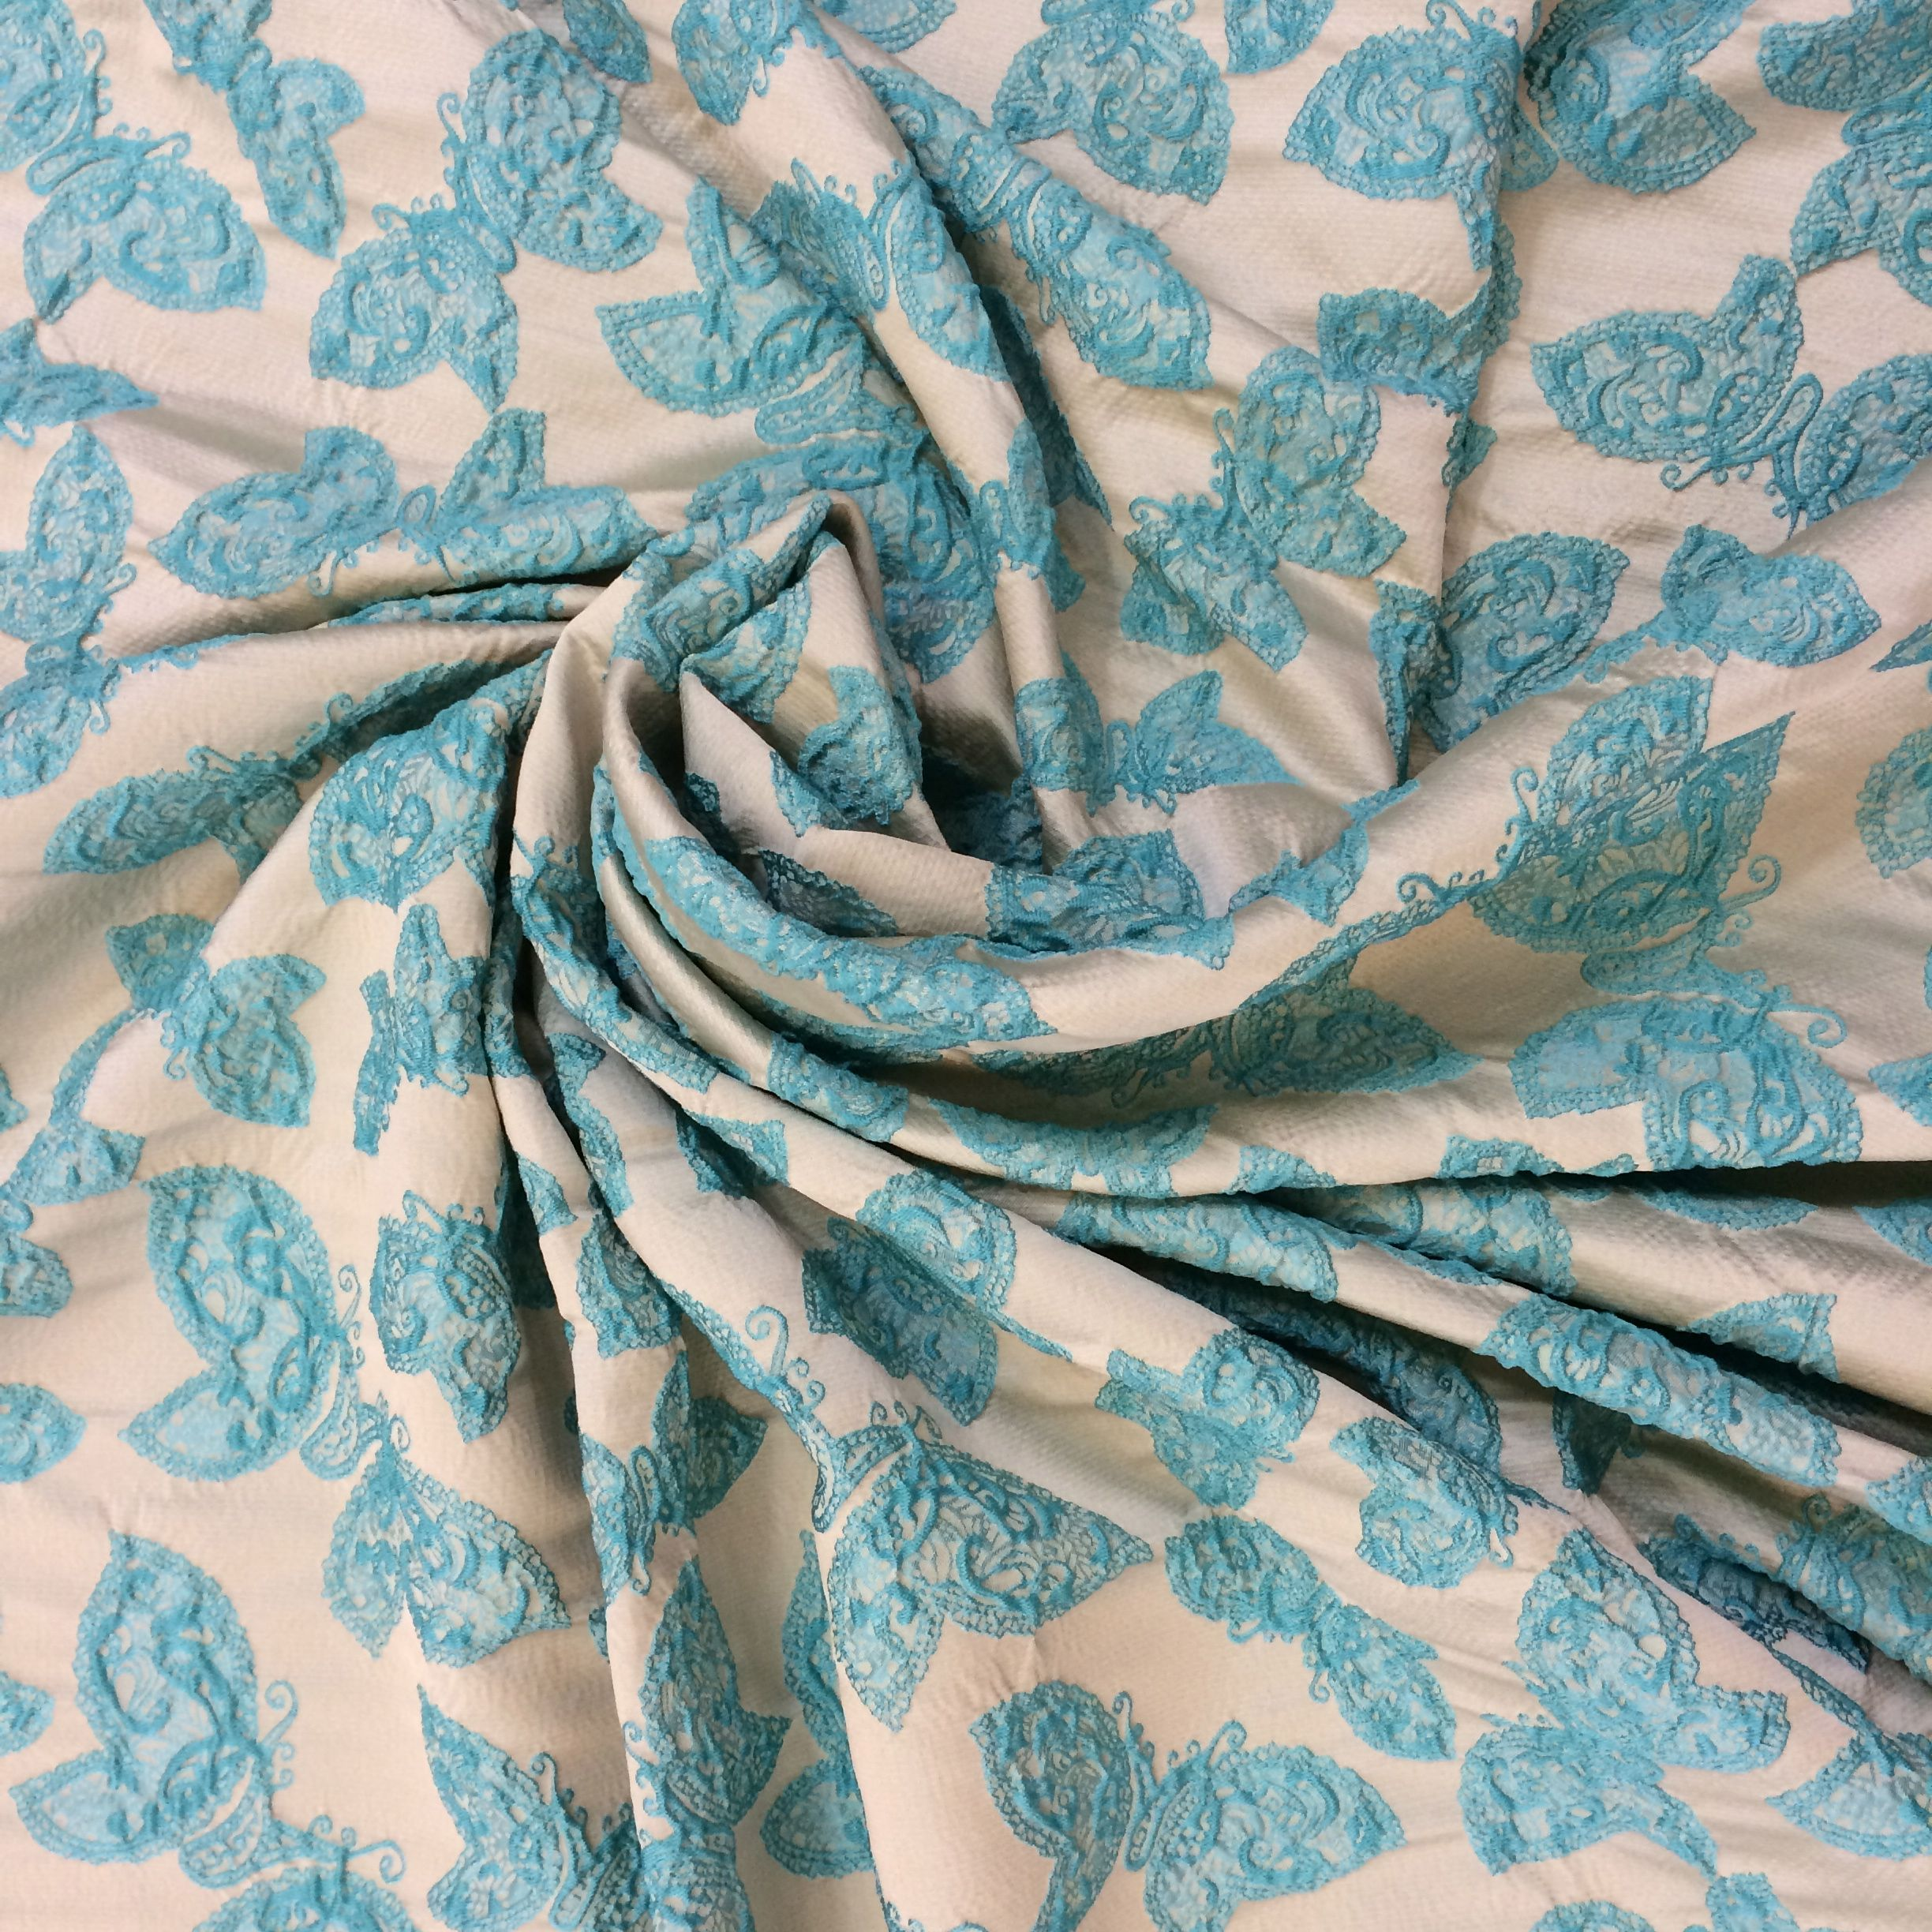 Haute couture luxury jacquard viscose fabric buy online, printed floral fabric, fashion designer dresses, made in Italy